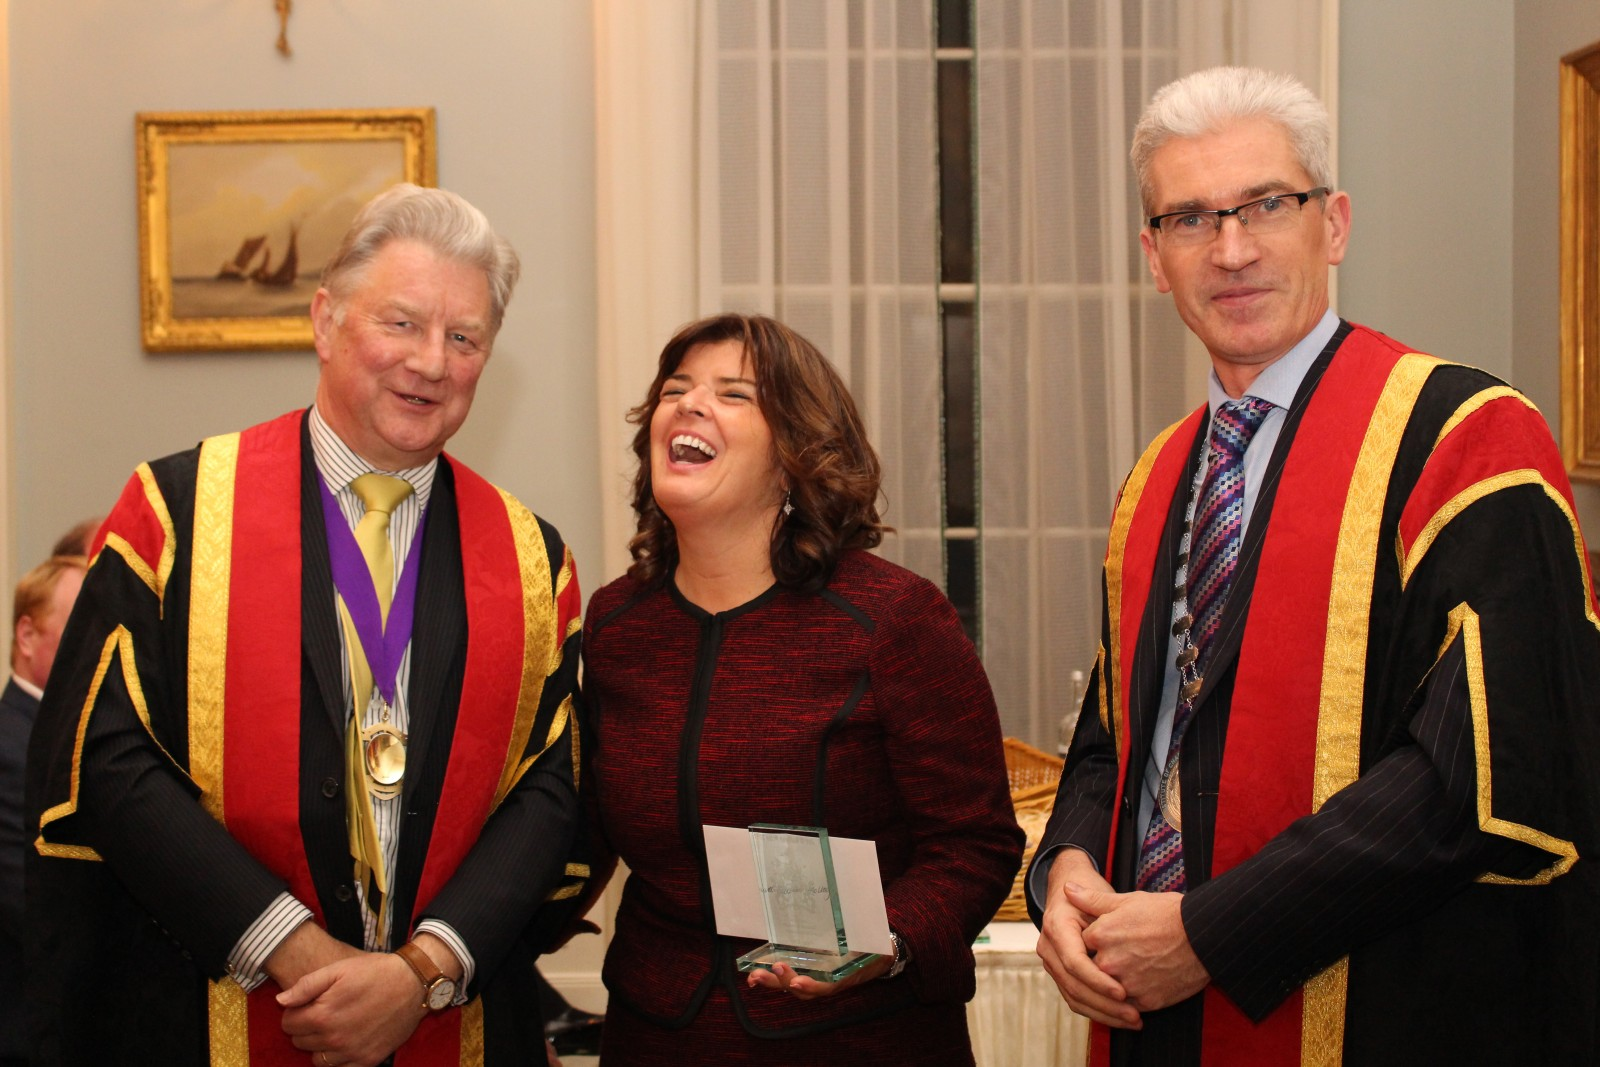 Graduation and Membership Ceremony - Photos now available